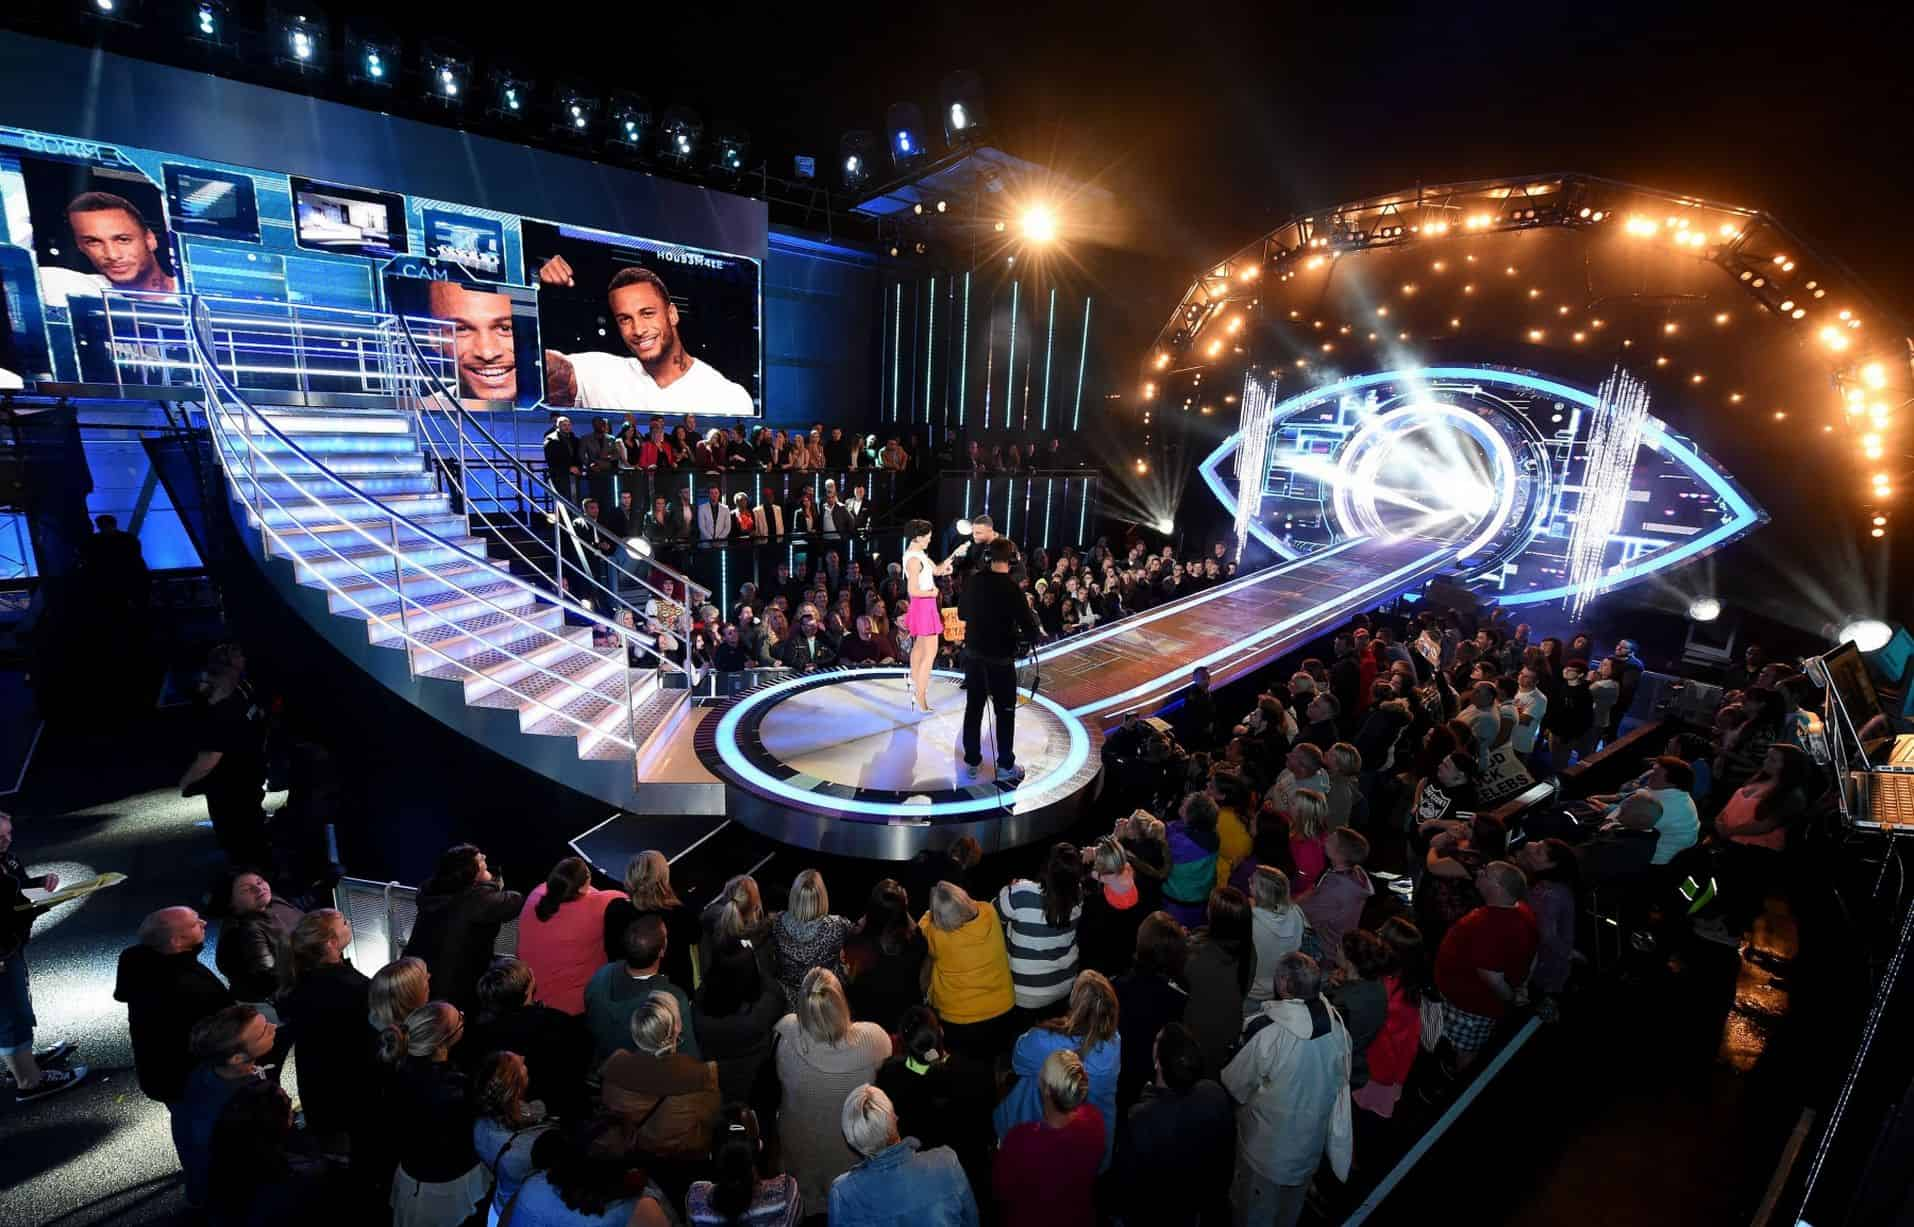 Big Brother 4 | Big Brother UK Wiki | FANDOM powered by Wikia